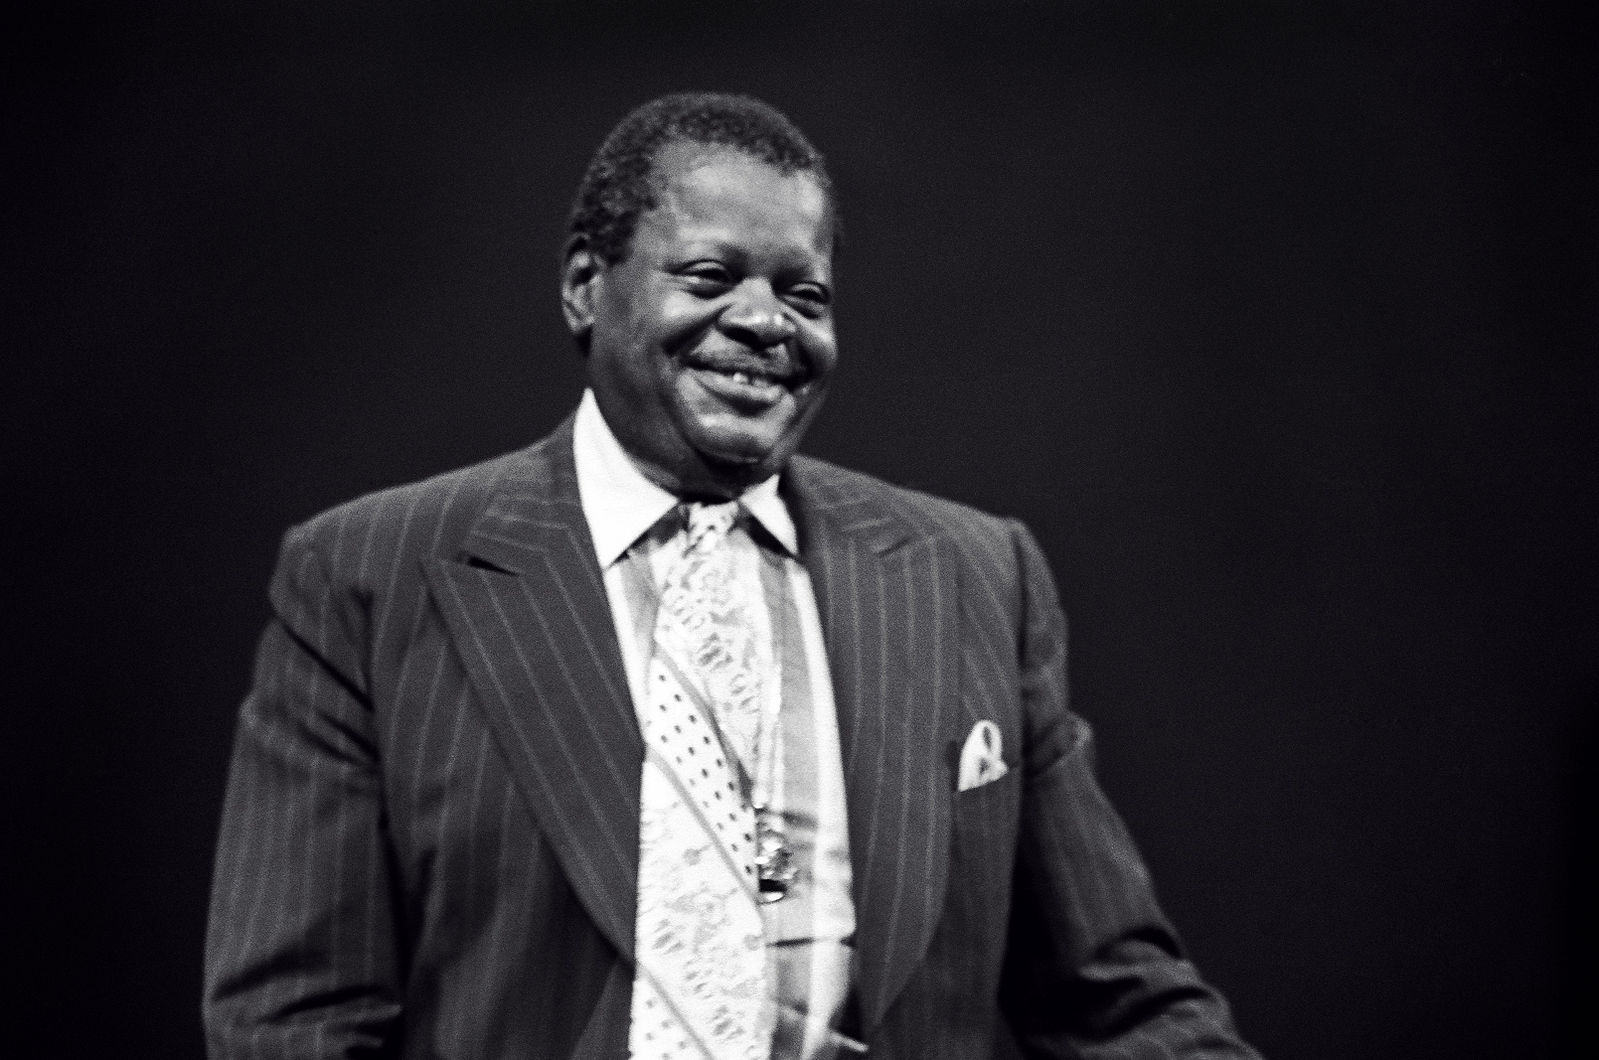 http://commons.wikimedia.org/wiki/File:Oscar_Peterson.jpg